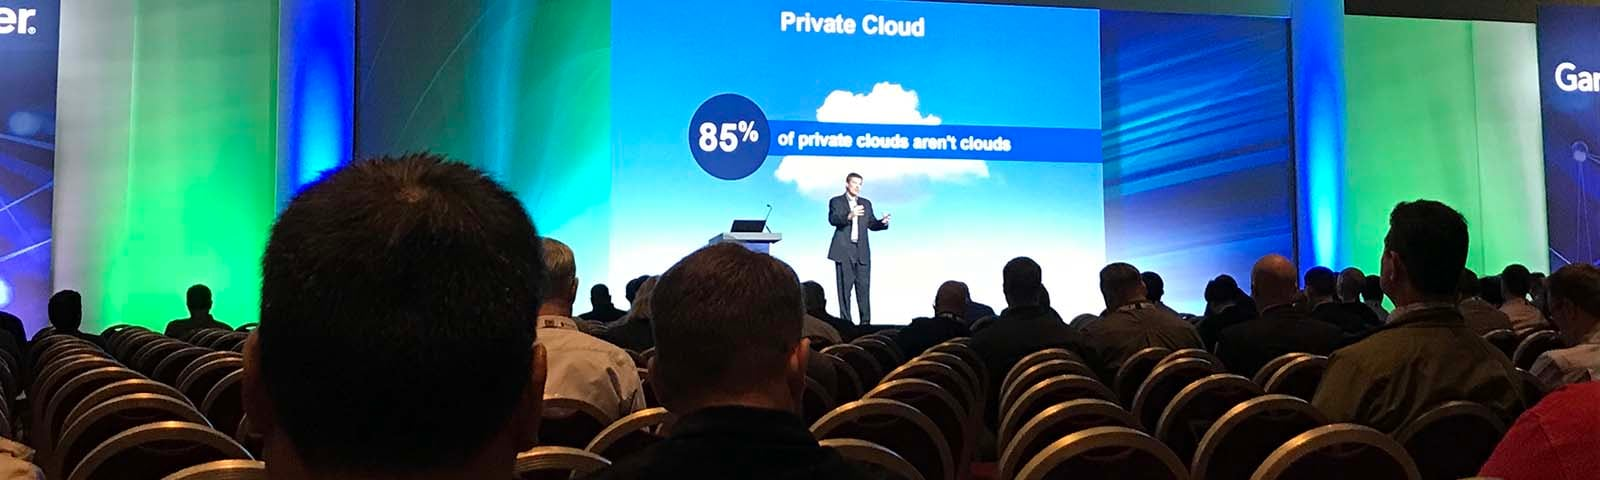 The journey to the cloud is now about a mix of models, Gartner says